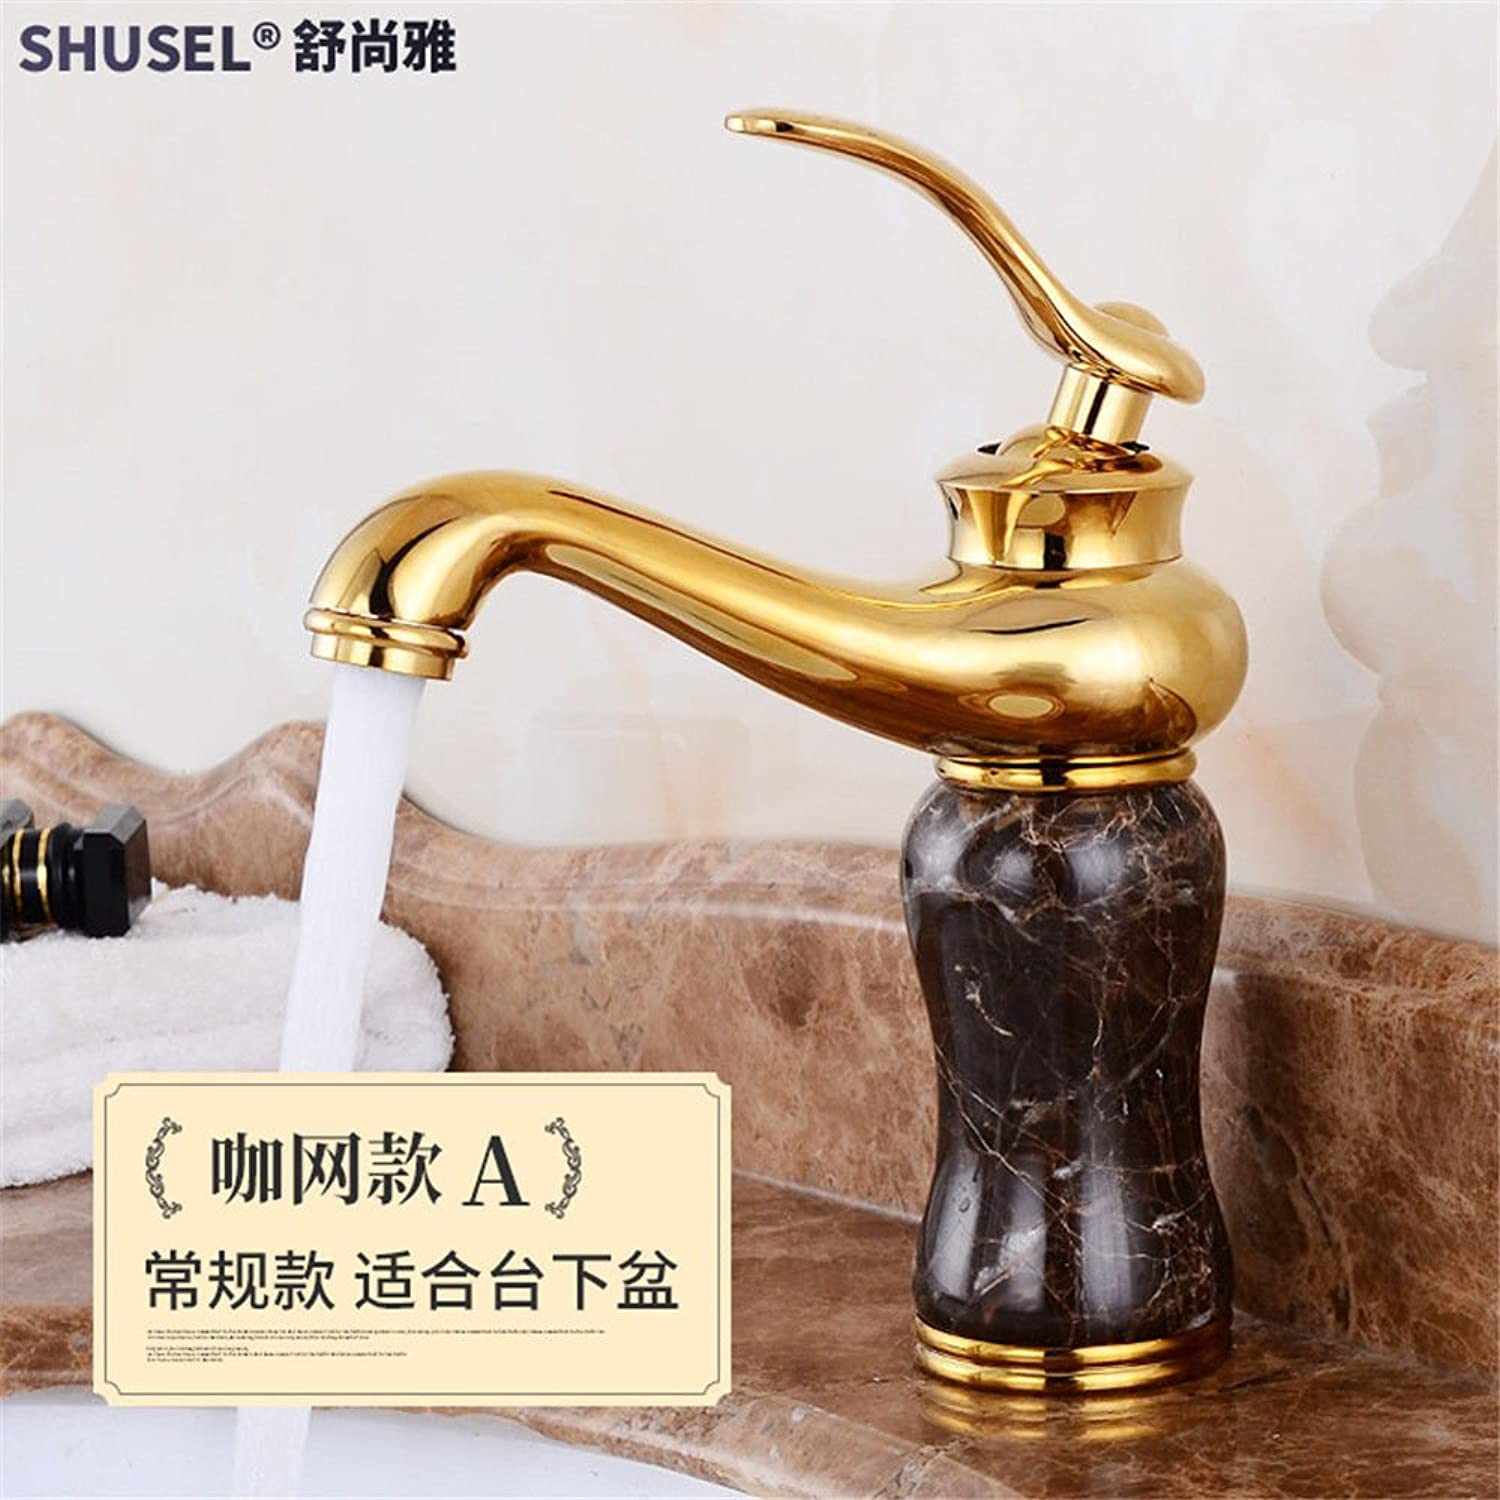 Lalaky Taps Faucet Kitchen Mixer Sink Waterfall Bathroom Mixer Basin Mixer Tap for Kitchen Bathroom and Washroom gold Copper Main Jade Antique Hot and Cold gold-Plated Marble